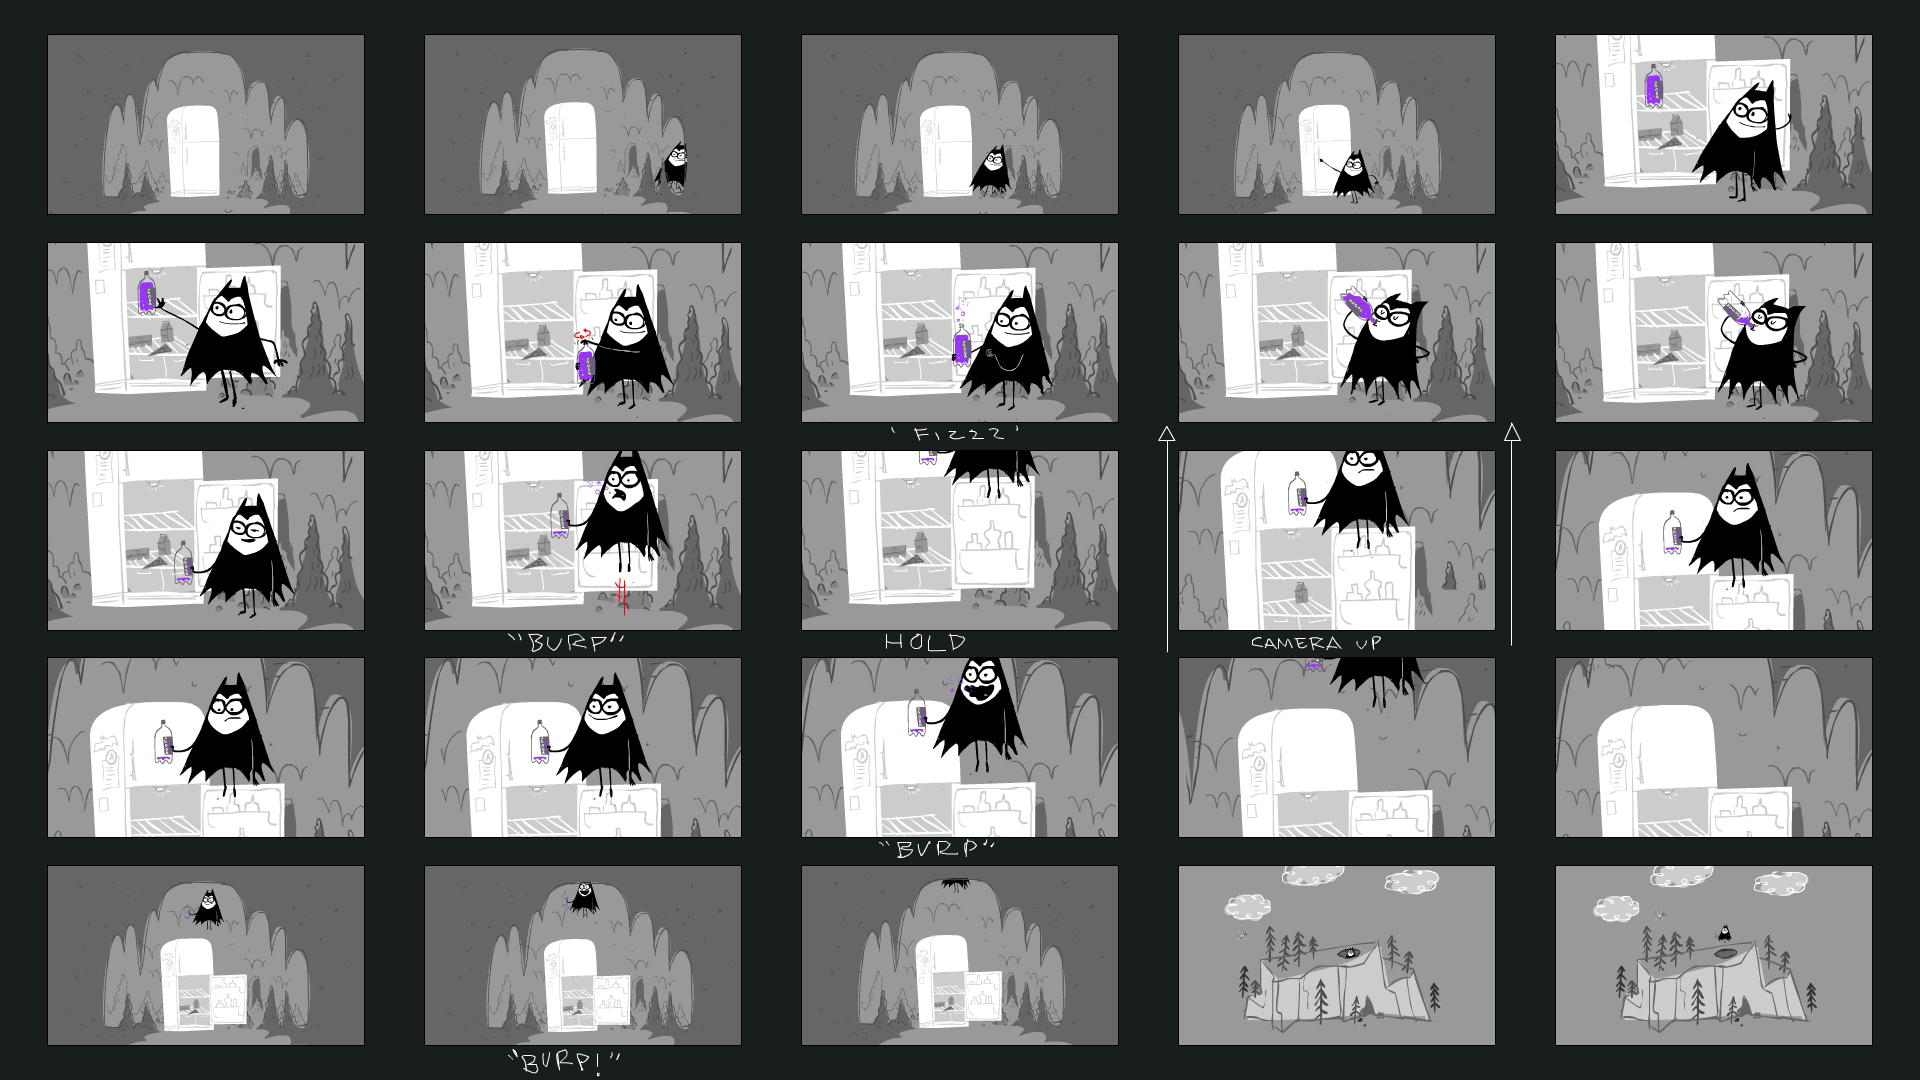 MikeOwens_STORYBOARDS_LilBat_SodaSpace_Page_1.png